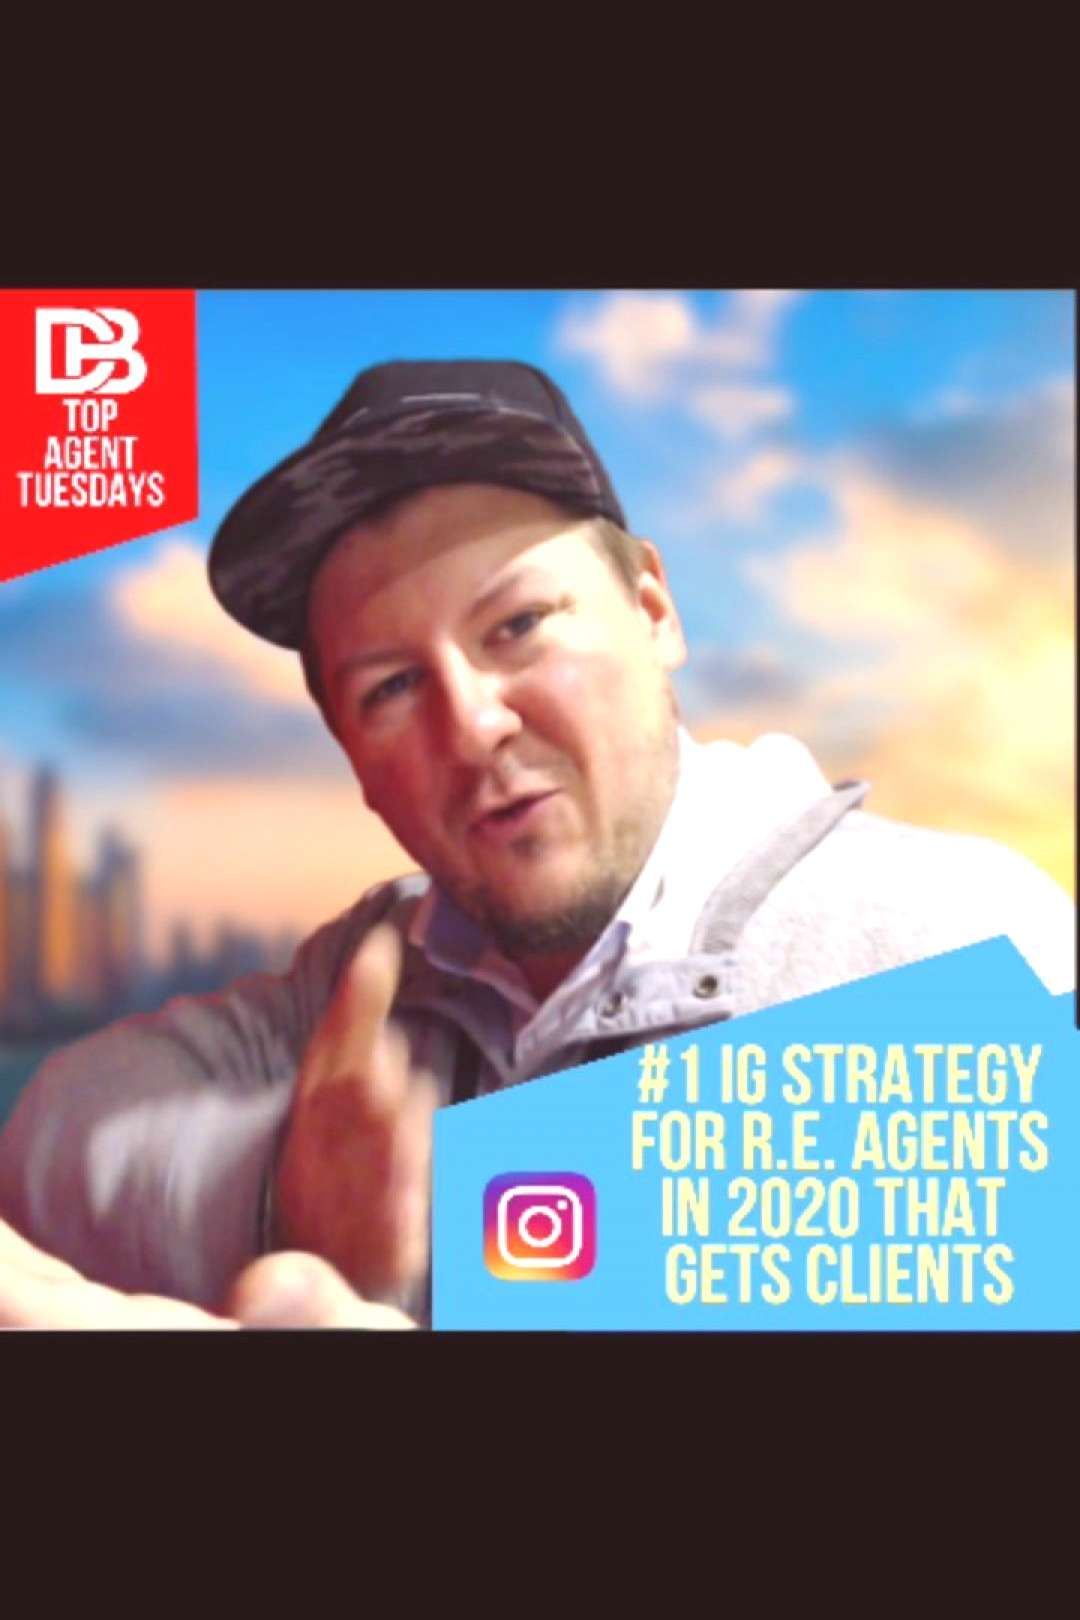 #strategy #agents #thats #2020 #that #only #they #001 #use #but #why #are #of 2020 Strategy that only .001 of agents use but thats why they areYou can find Real estate instagram and more on our website.2020 Strategy that only ...